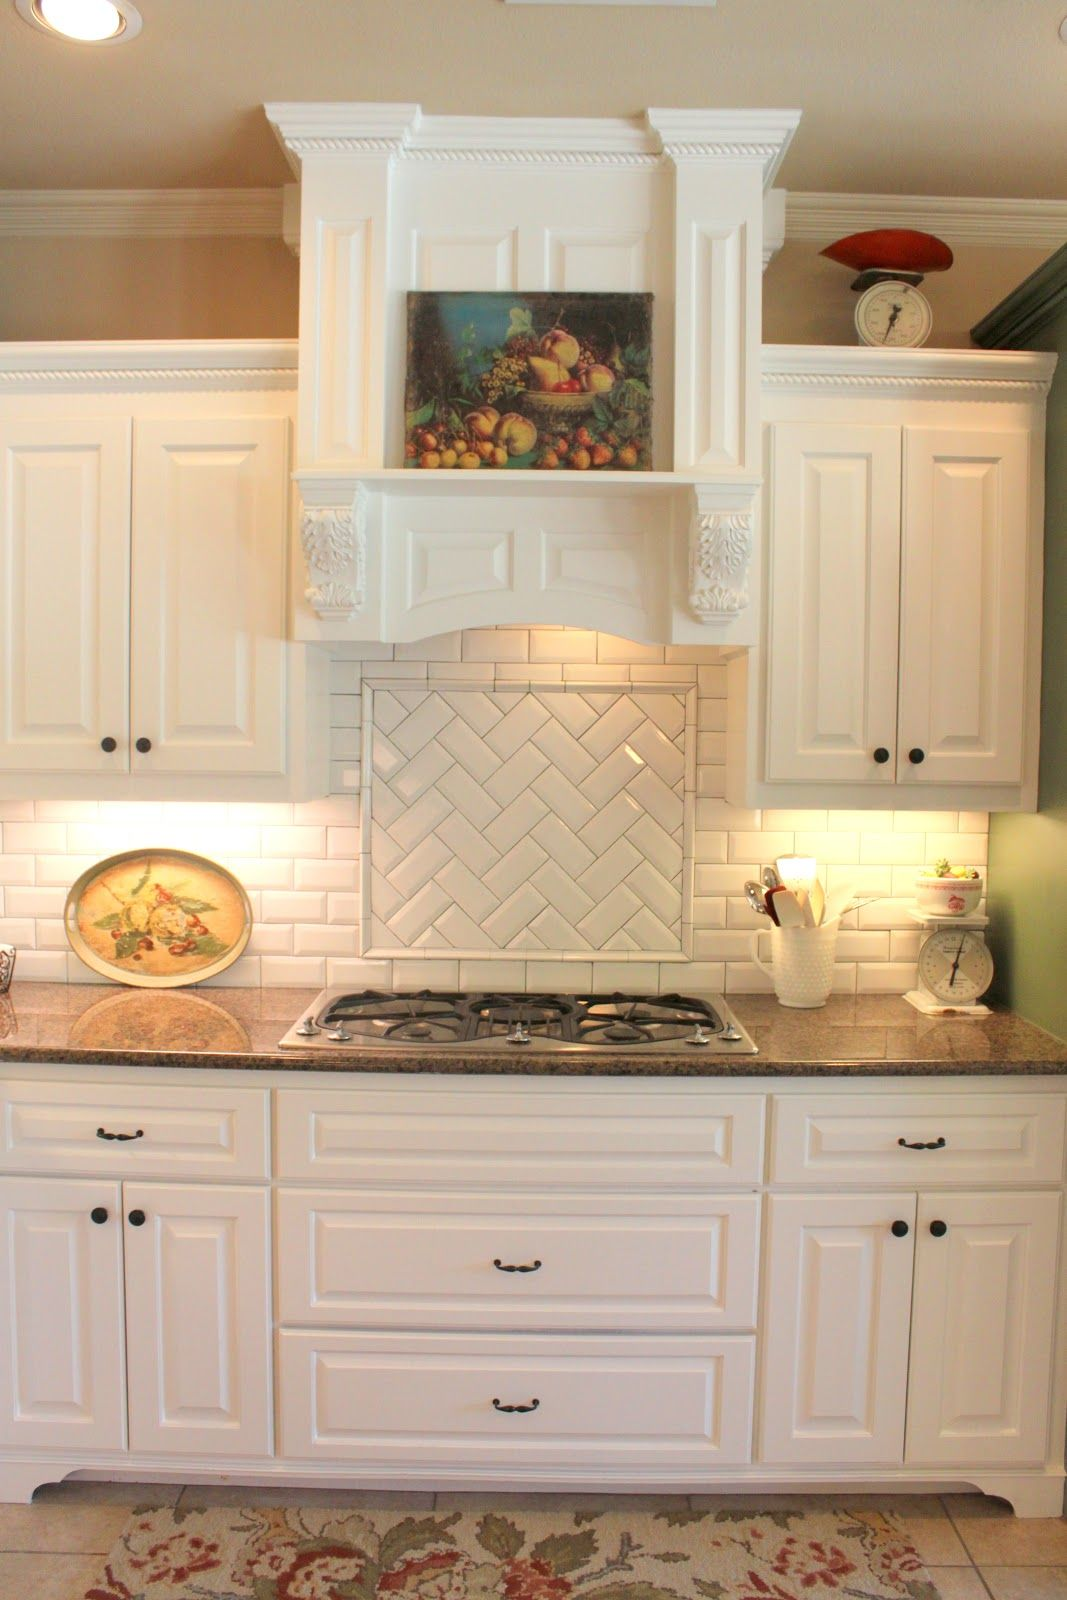 kitchen kitchen tile kitchen ideas kitchen reno kitchen backsplash